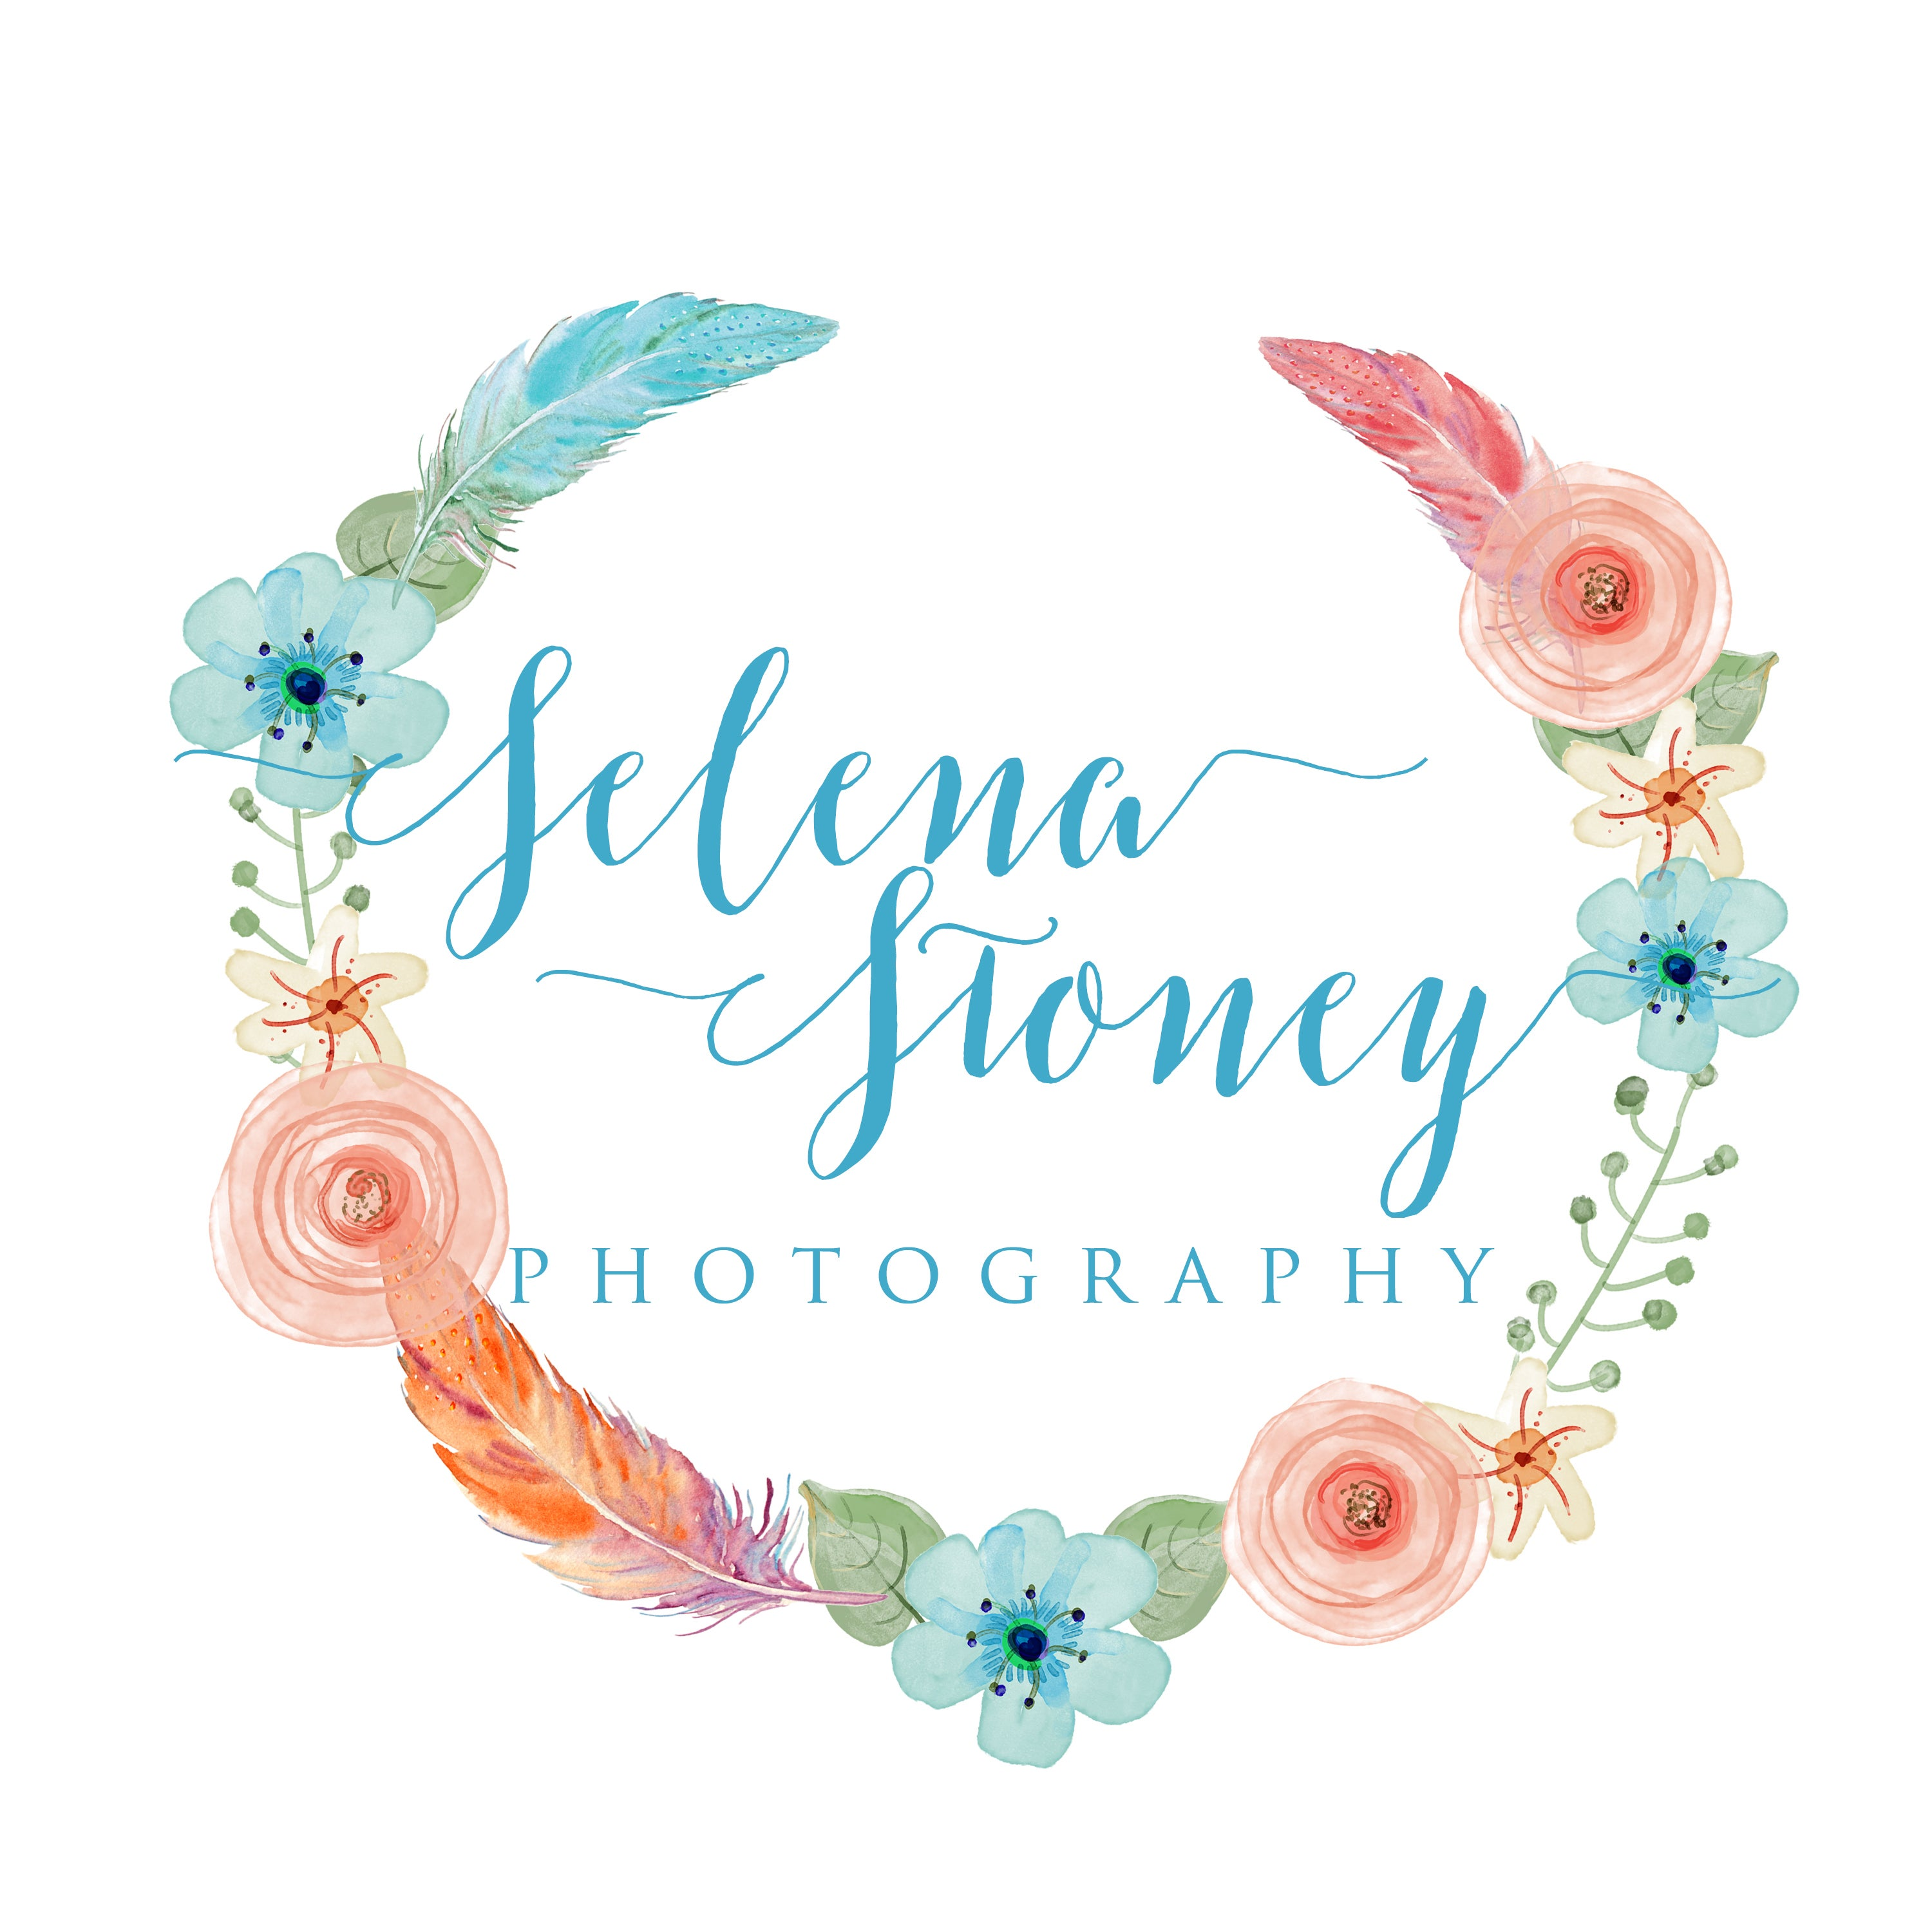 Selena Stoney Photography